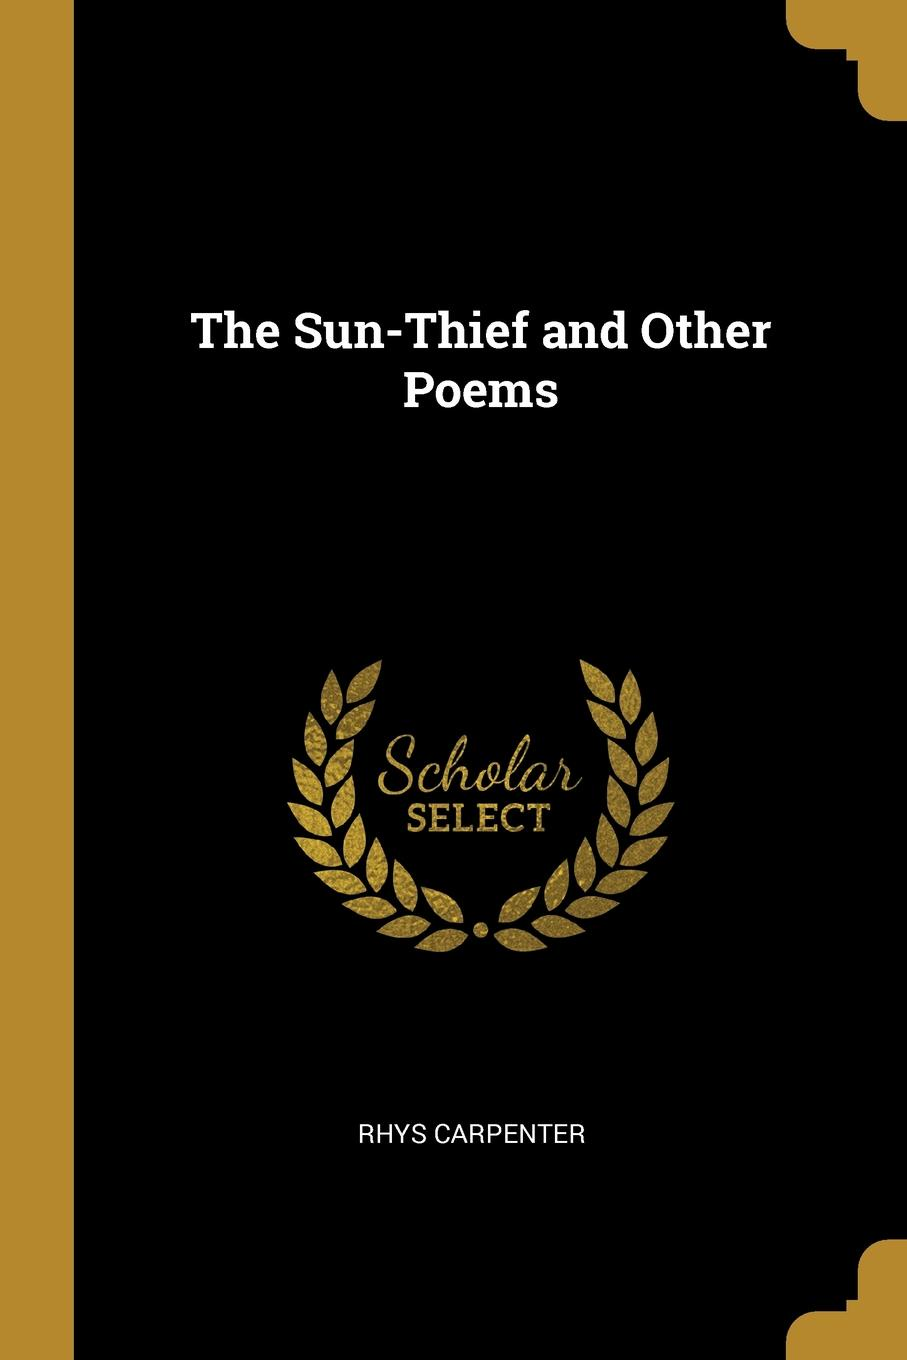 Rhys Carpenter The Sun-Thief and Other Poems